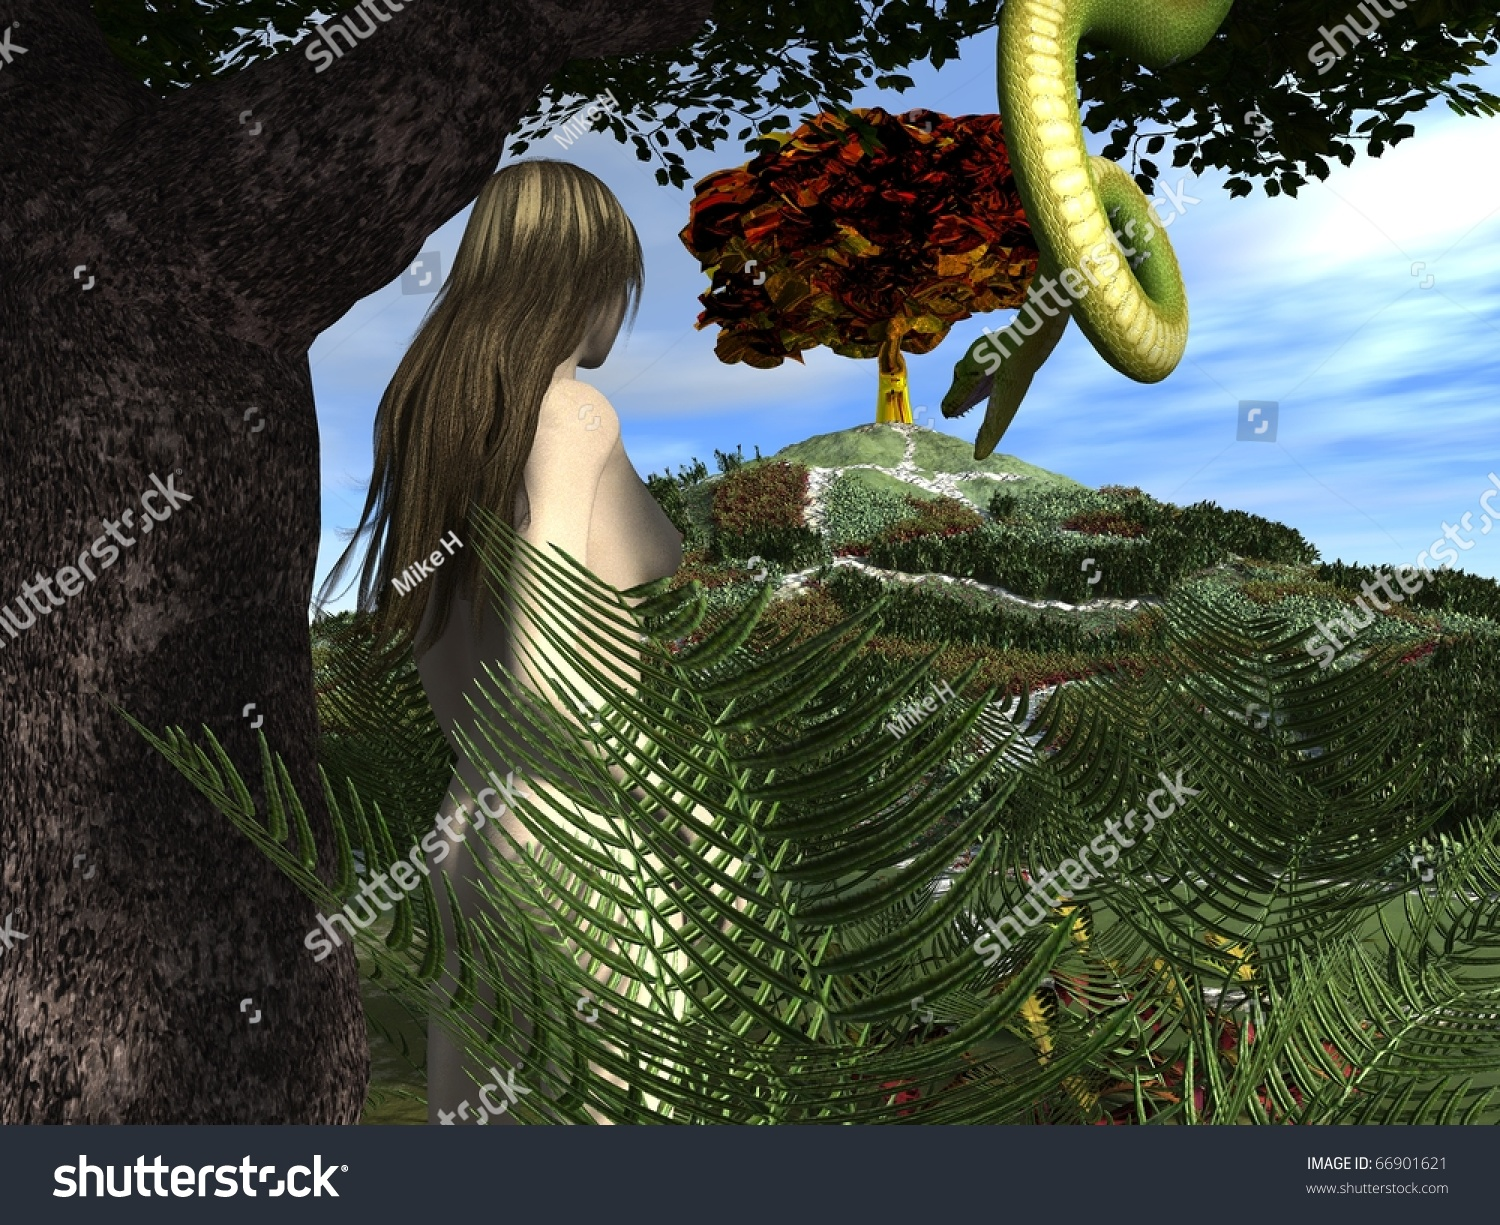 Serpent Tempts Eve In The Garden Of Eden Stock Photo 66901621 Shutterstock